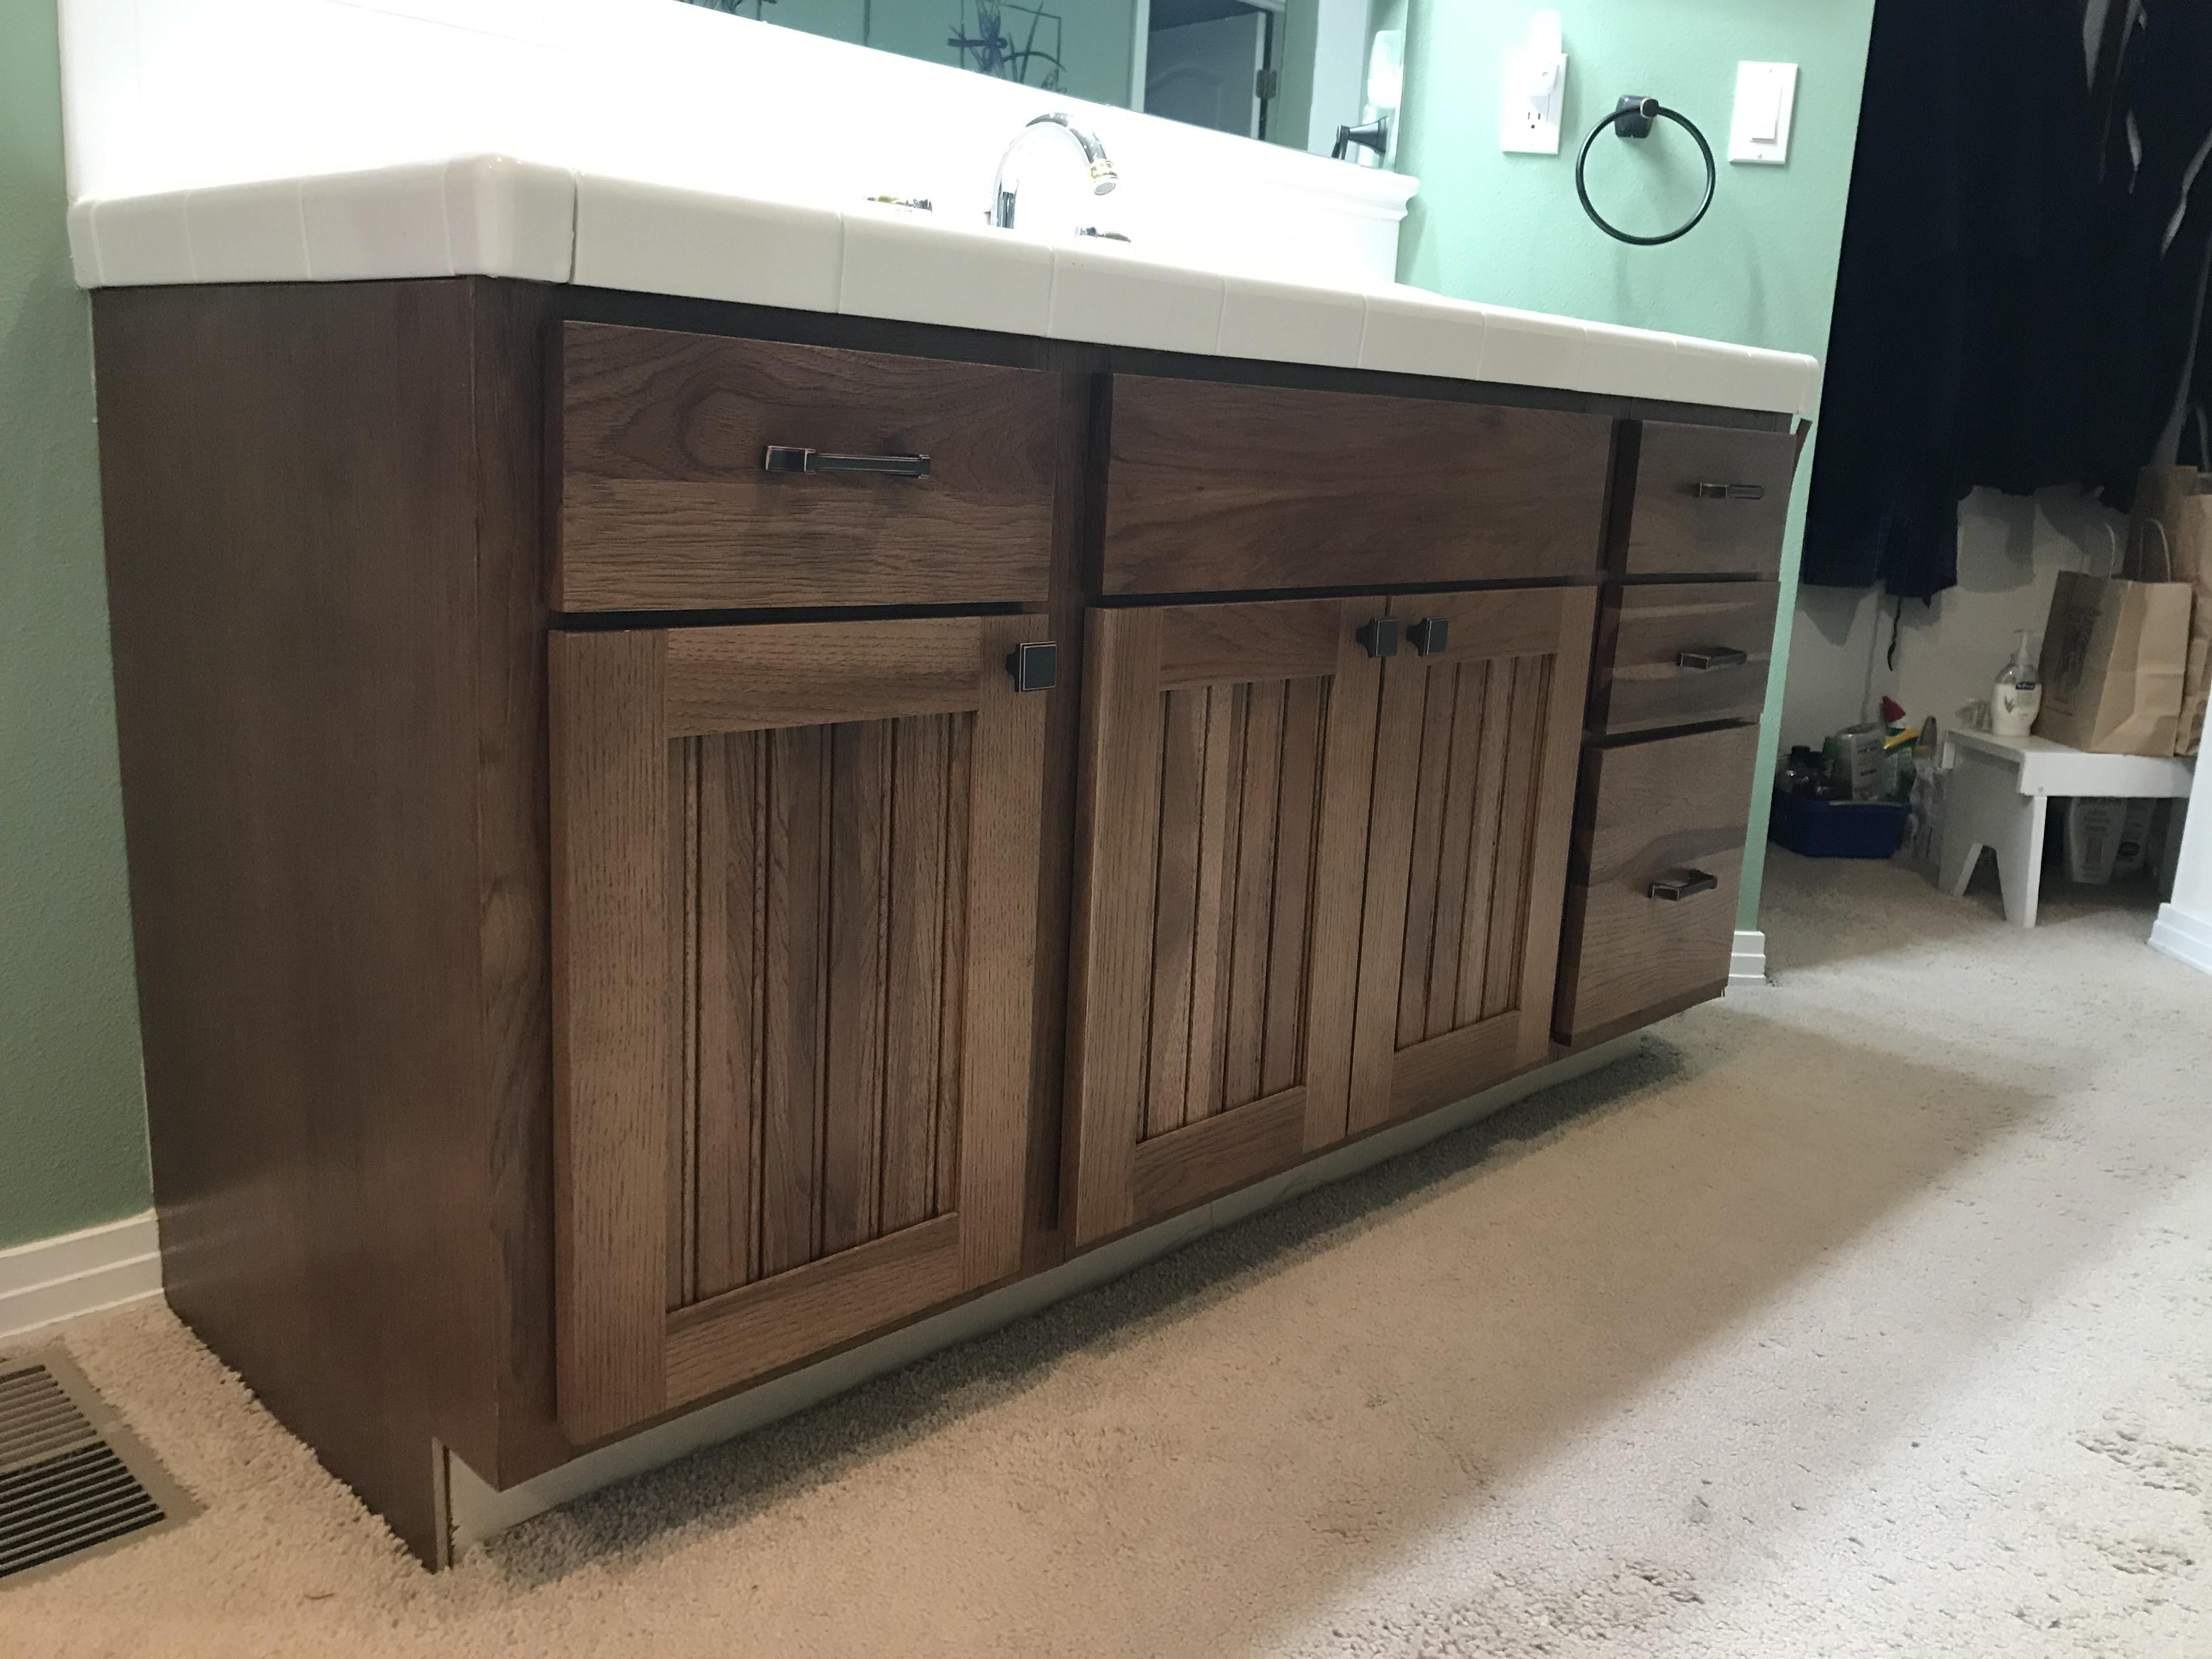 Kitchen Tune-Up Superior, CO - Refacing in 2020 | Cabinet ...